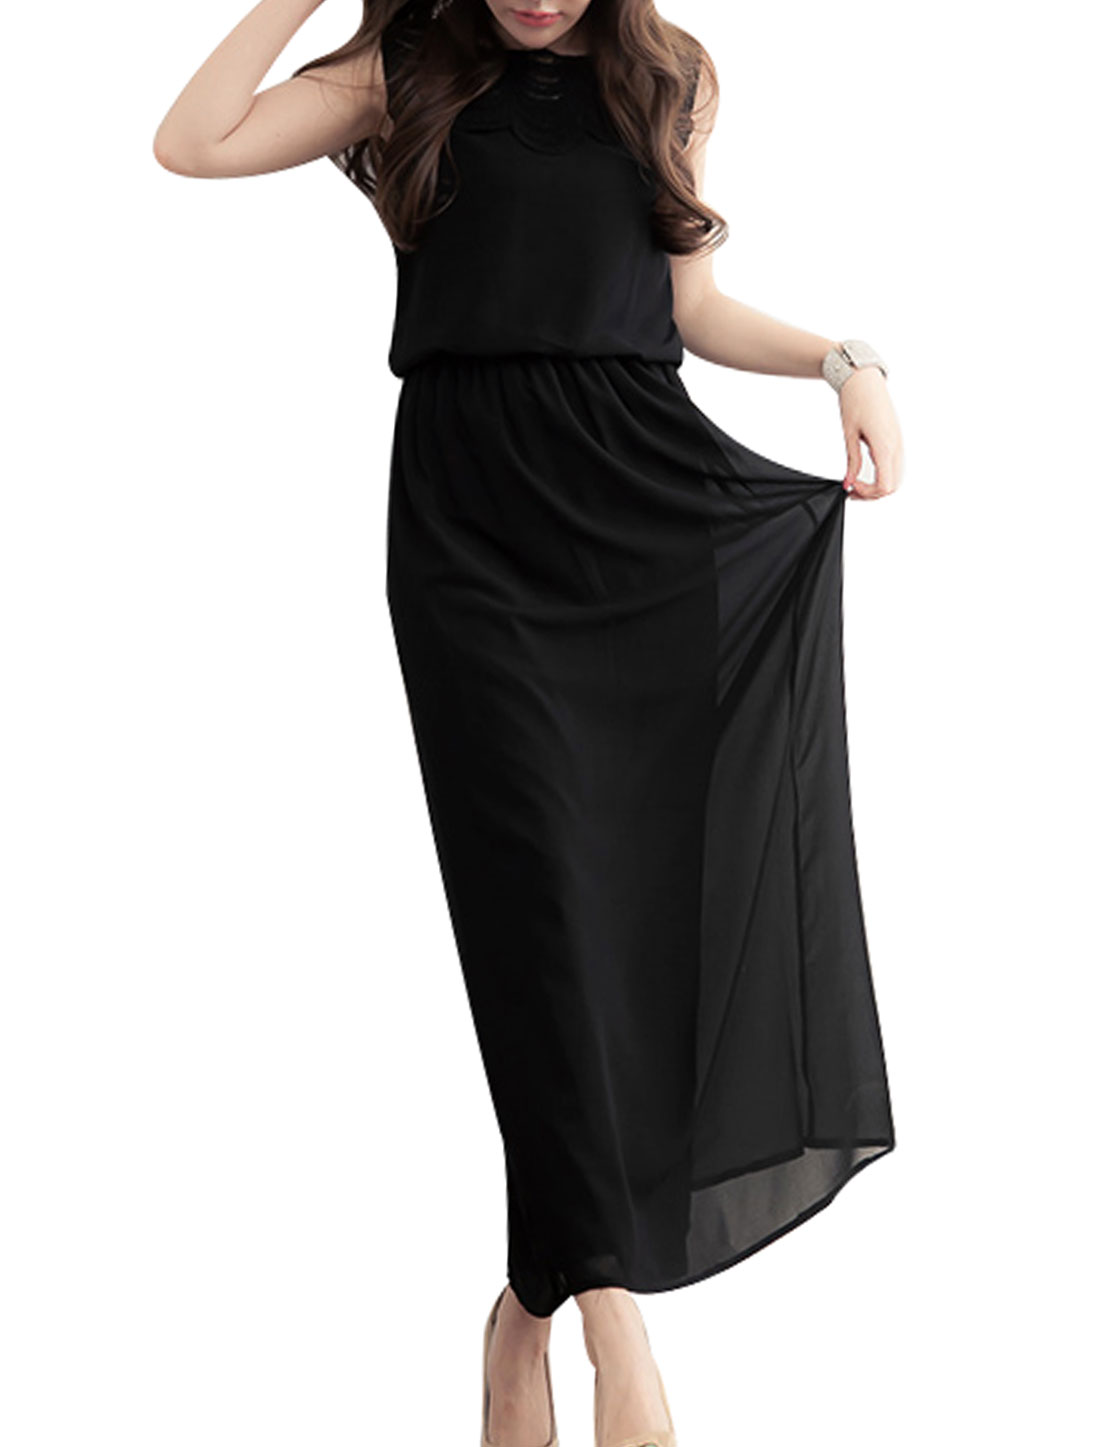 Woman Pullover Empire Waist Stylish Summer Long Chiffon Dress Black XS